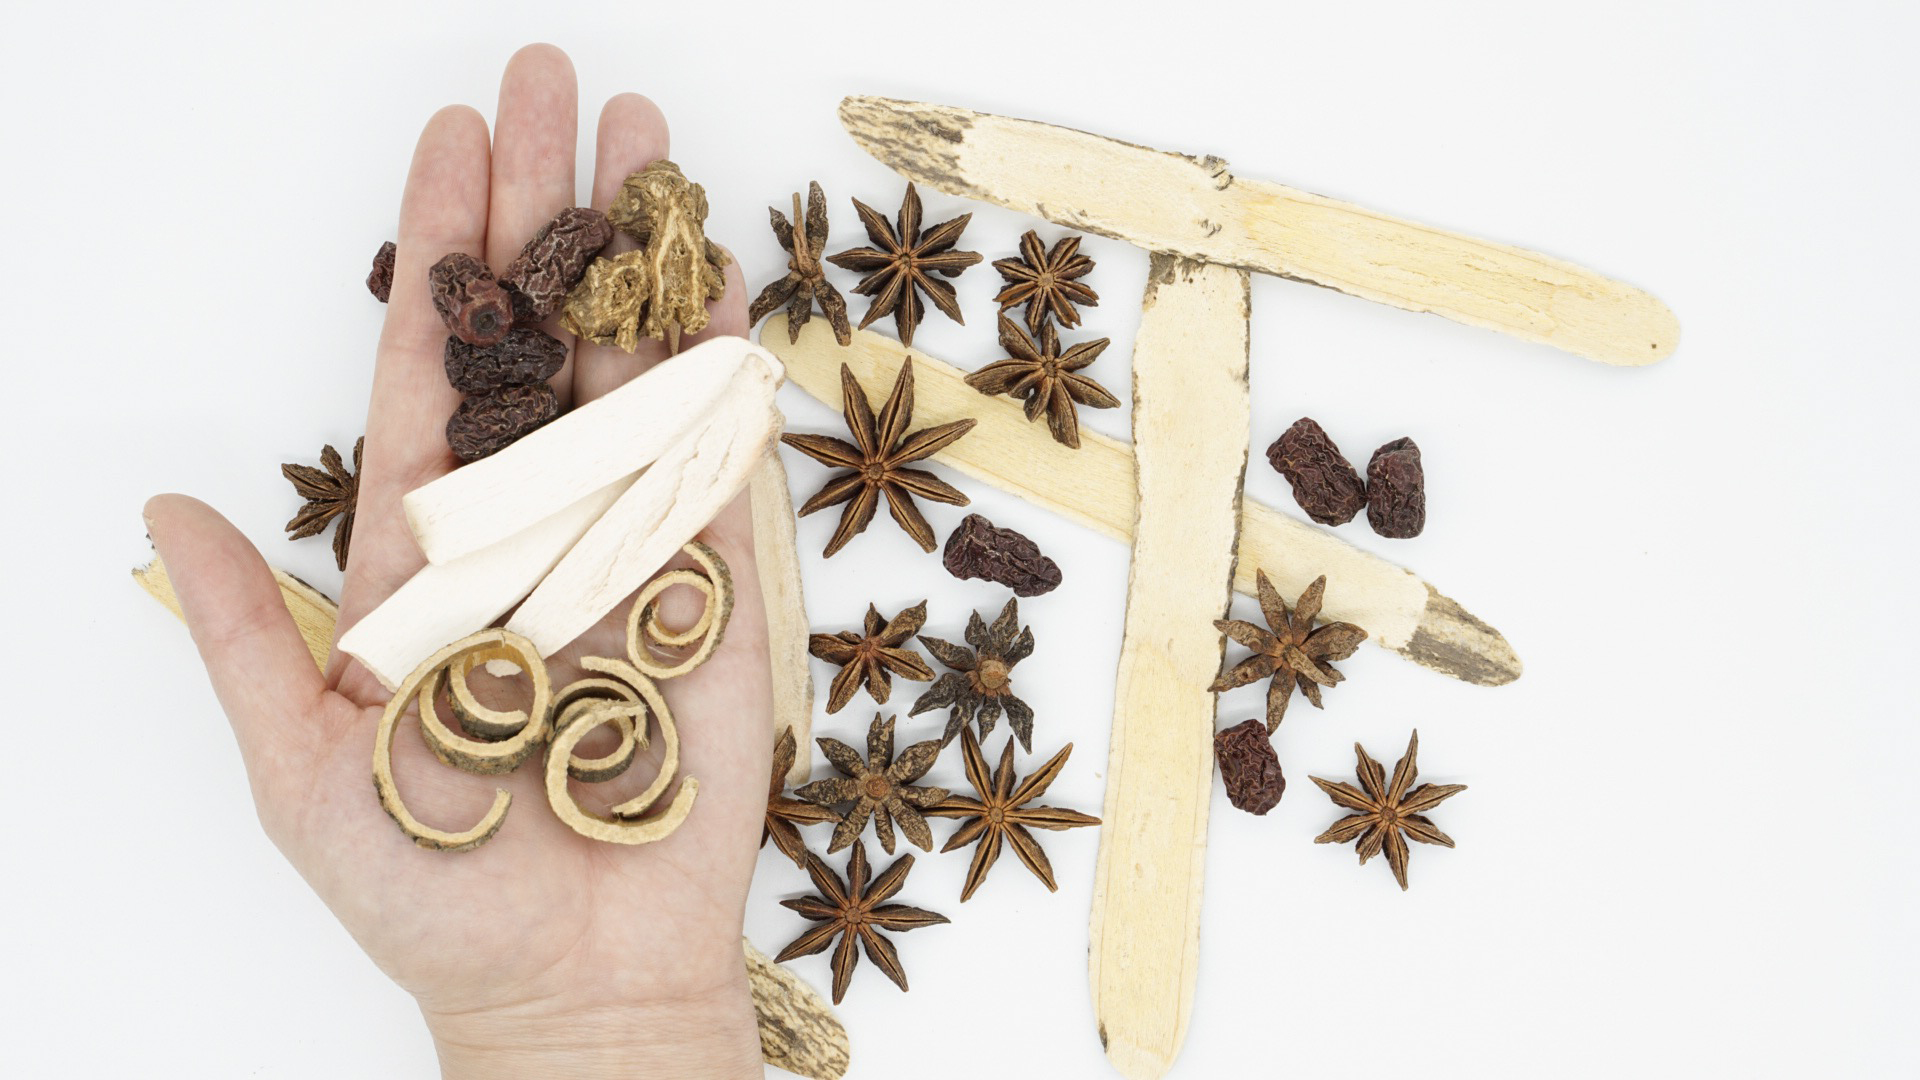 Emily_Grace_Acupuncture_Herbs_02.jpg